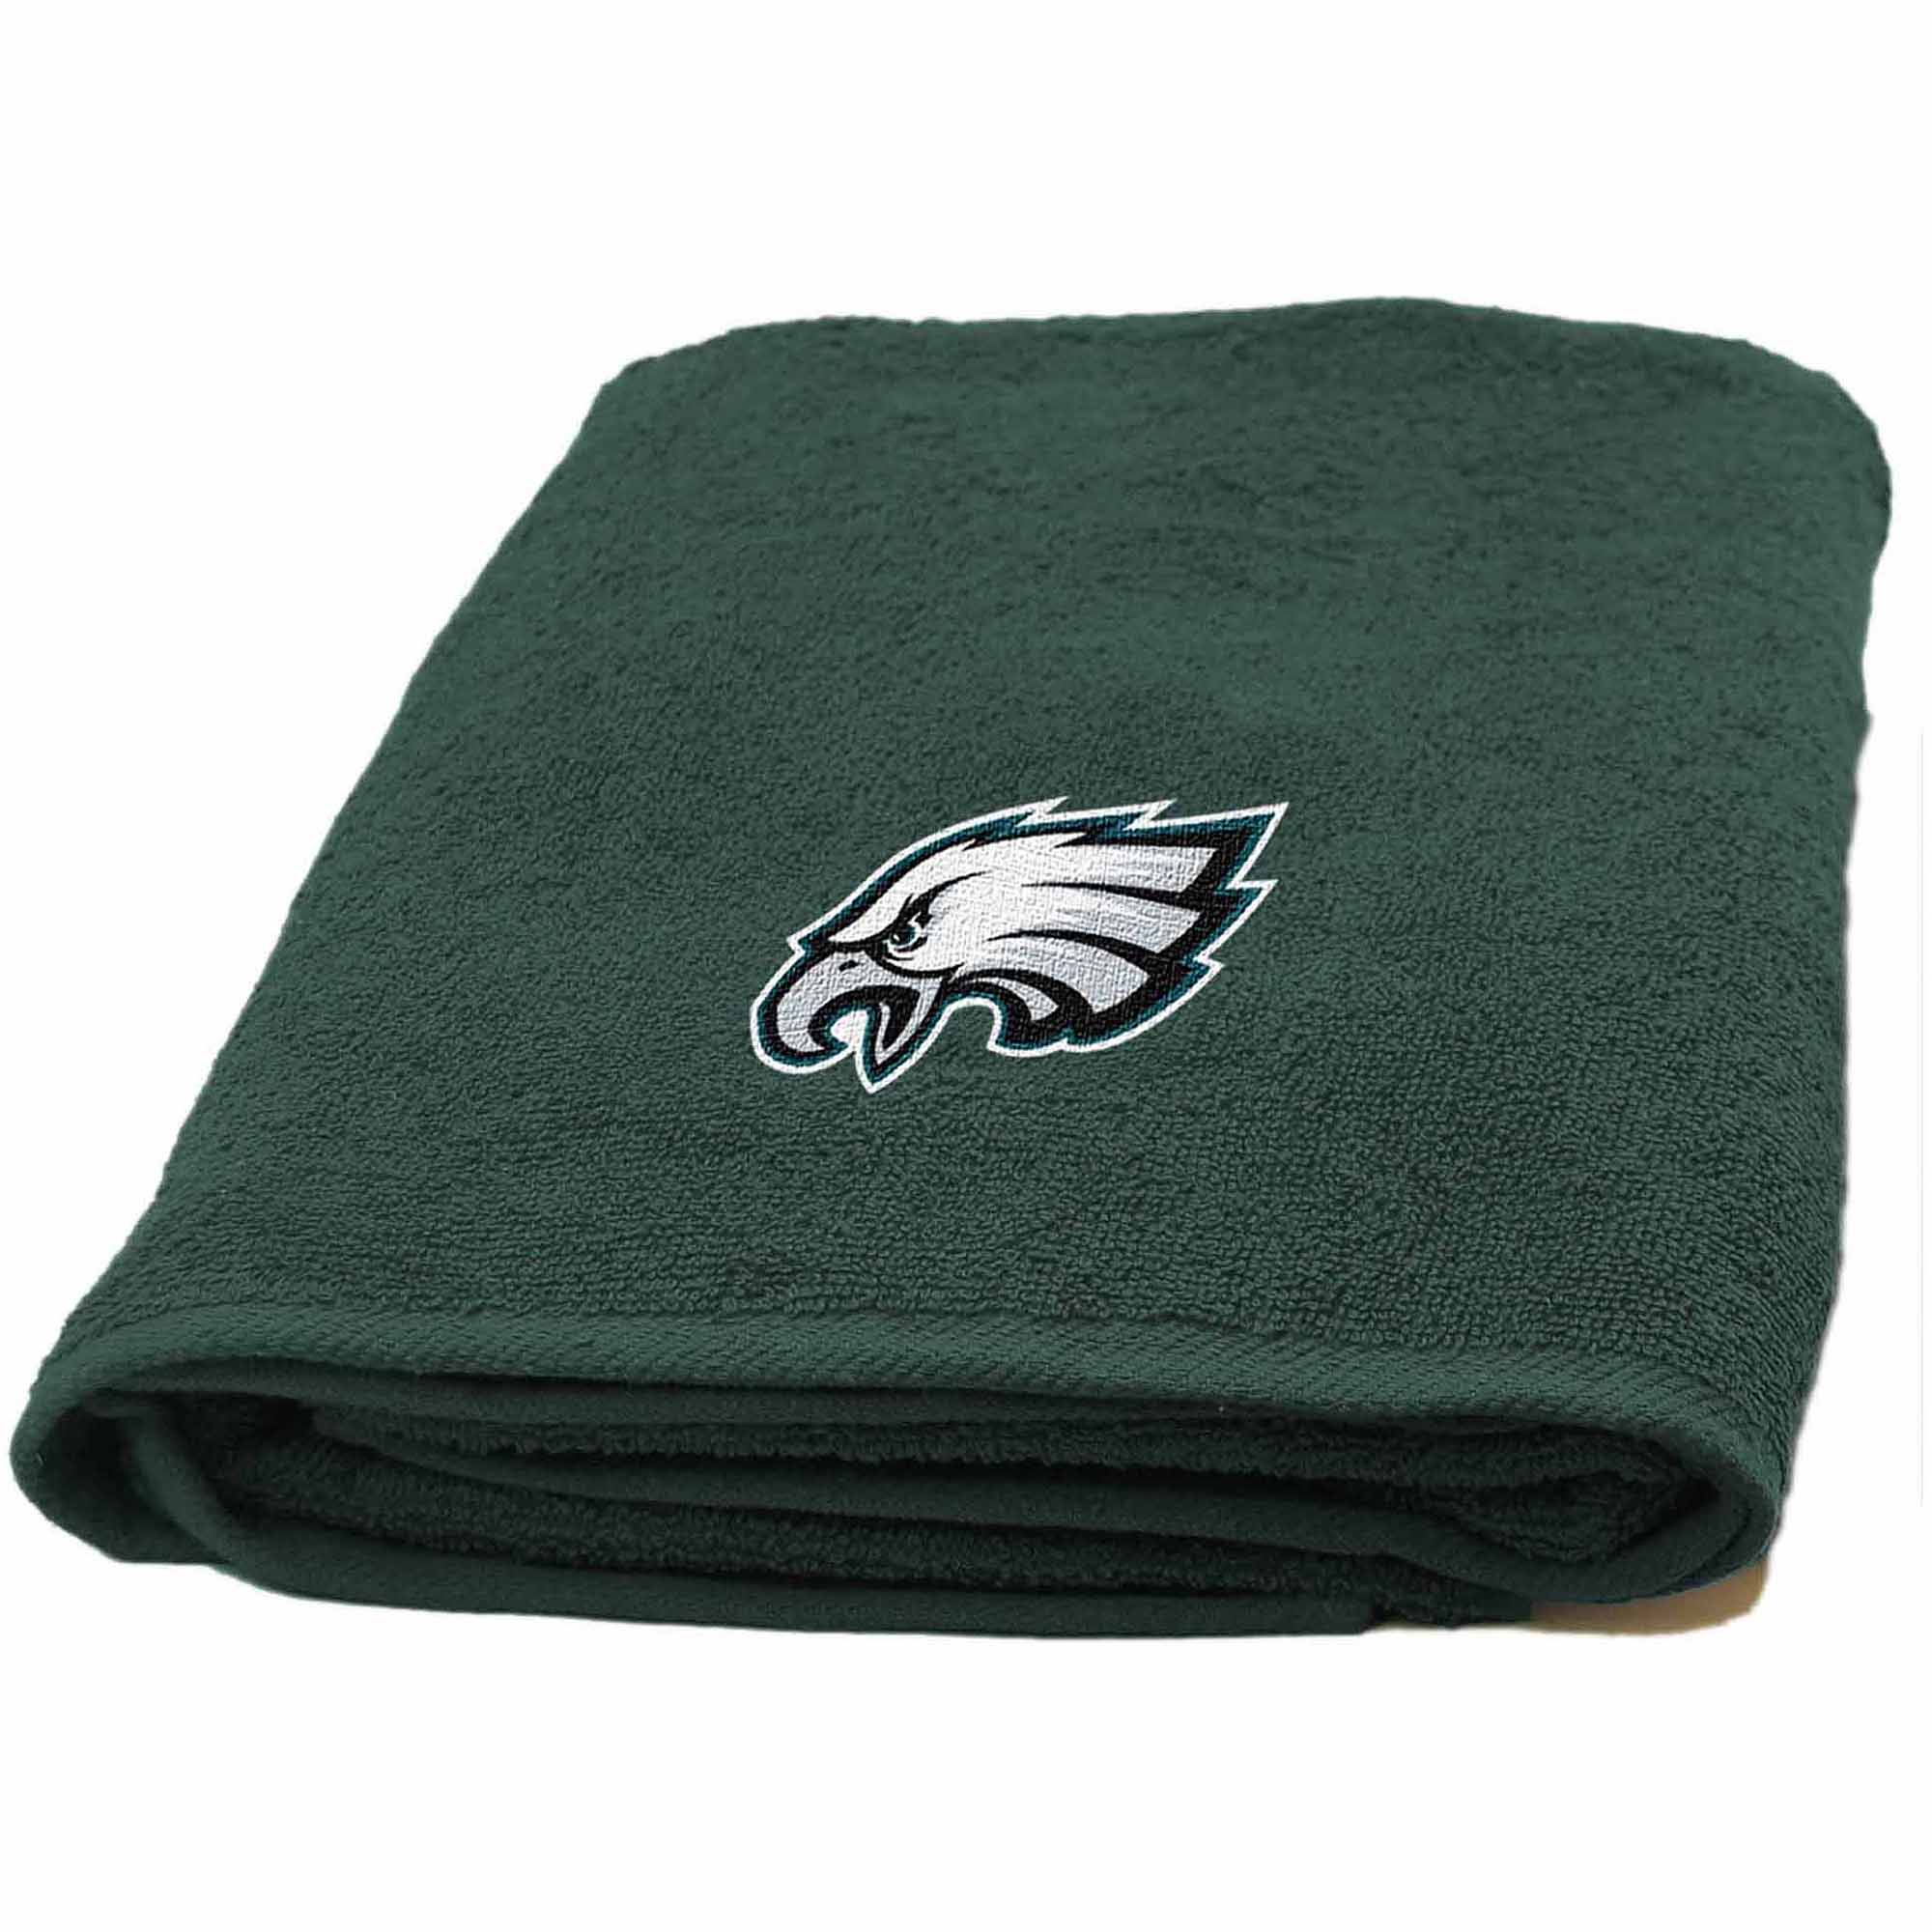 NFL Philadelphia Eagles Decorative Bath Collection - Bath Towel